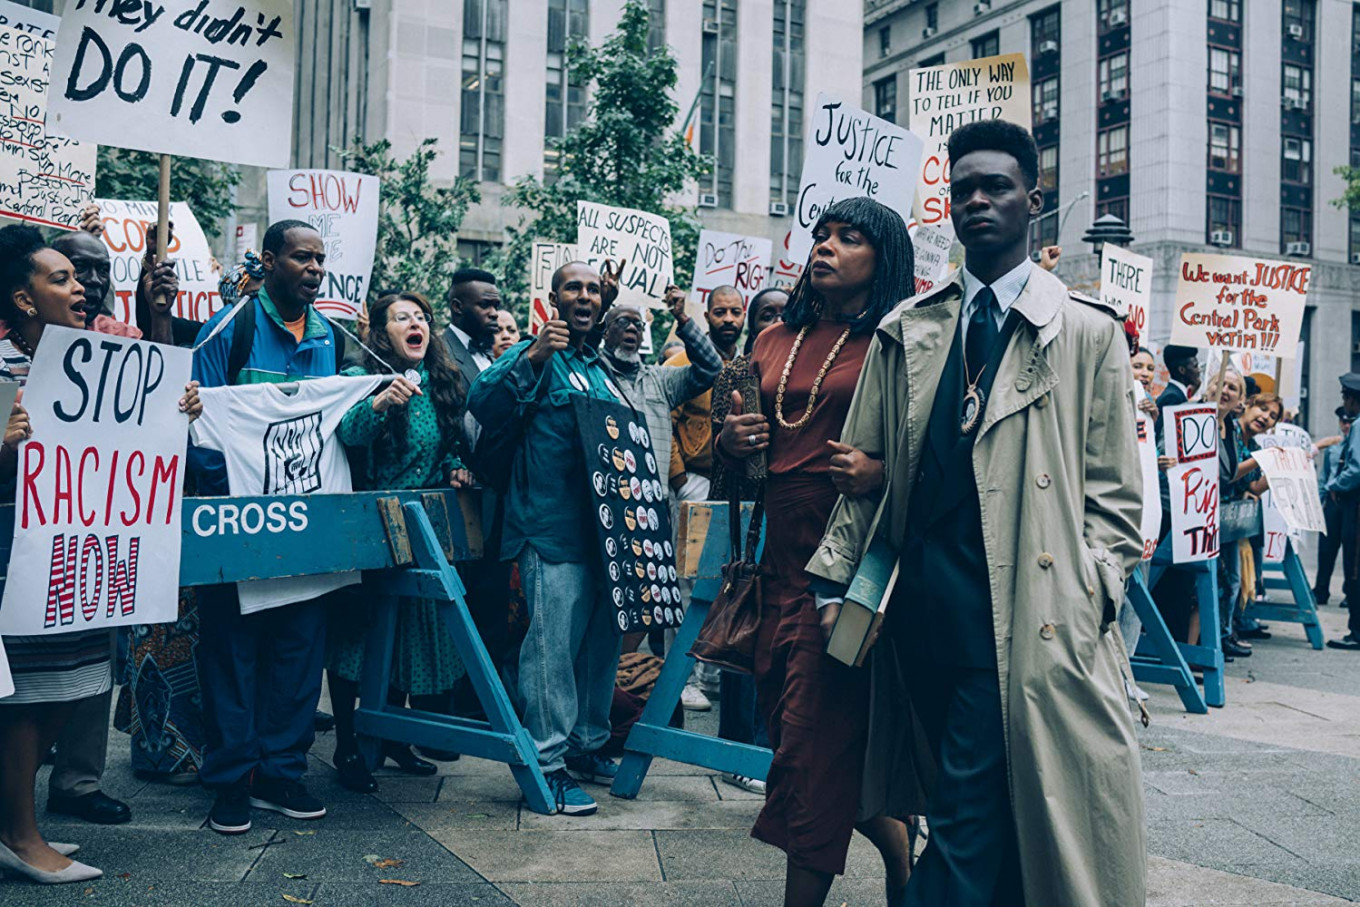 Over 23 million Netflix accounts worldwide tune in to 'When They See Us'